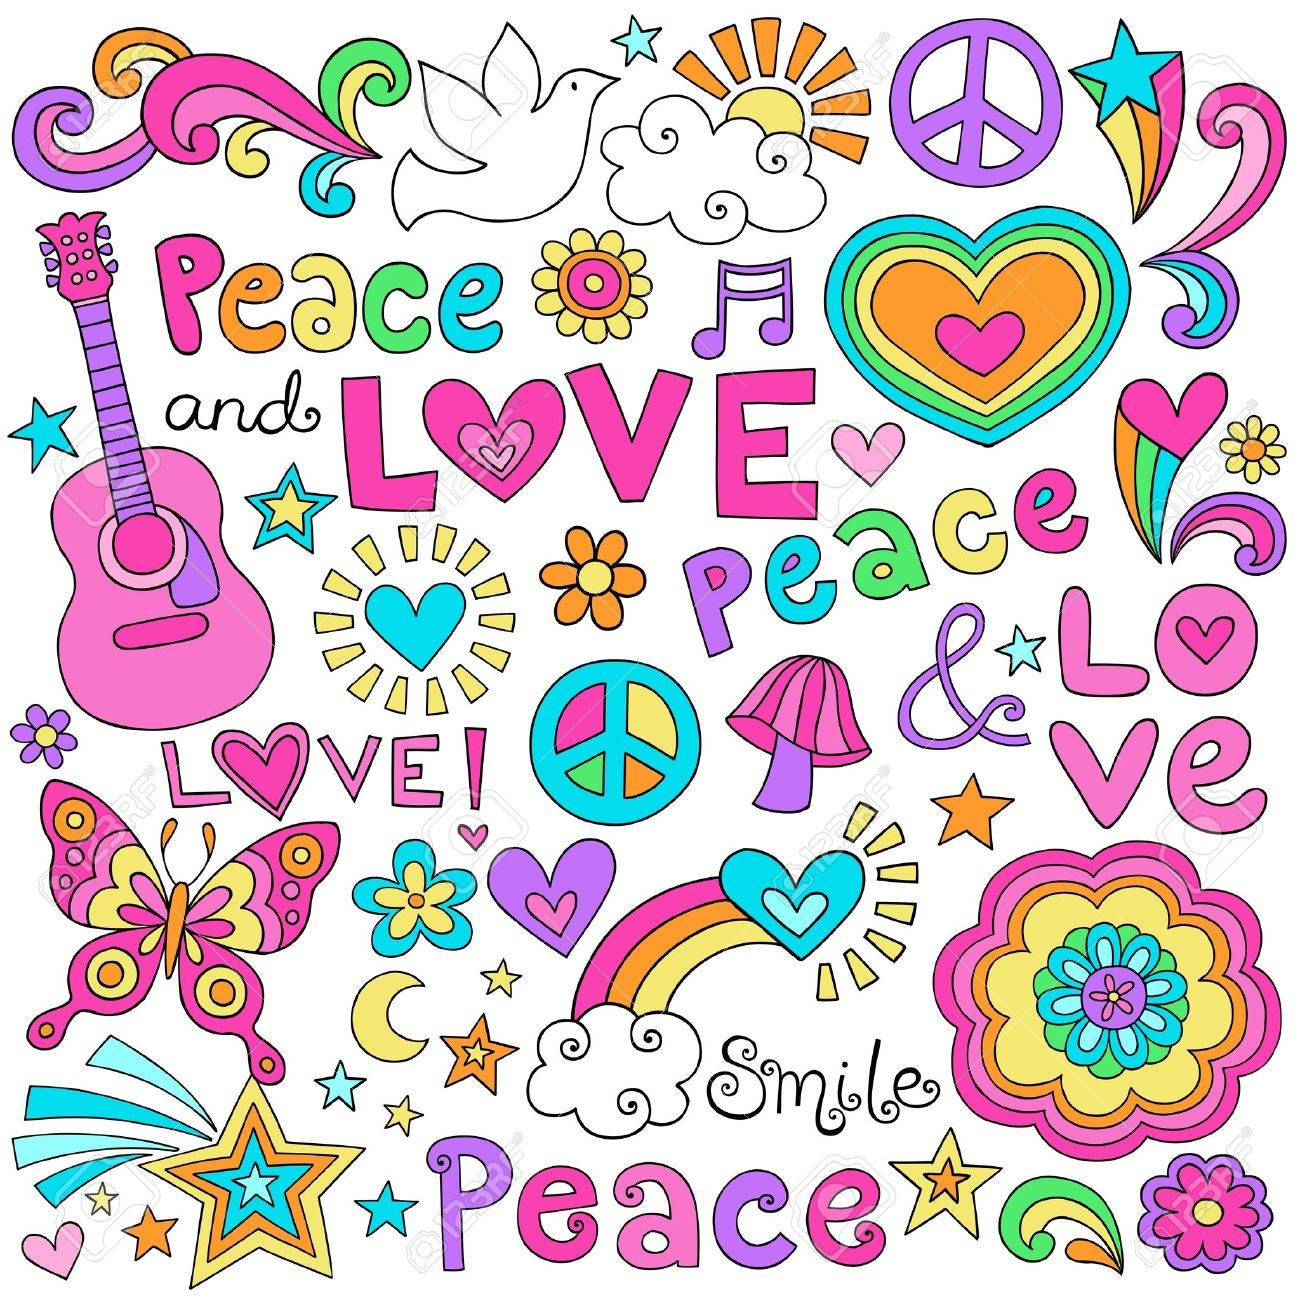 Peace Love and Music Flower Power Groovy Psychedelic Notebook Doodles Set with Peace Signs, Dove, Acoustic Guitar Stock Vector - 17456022